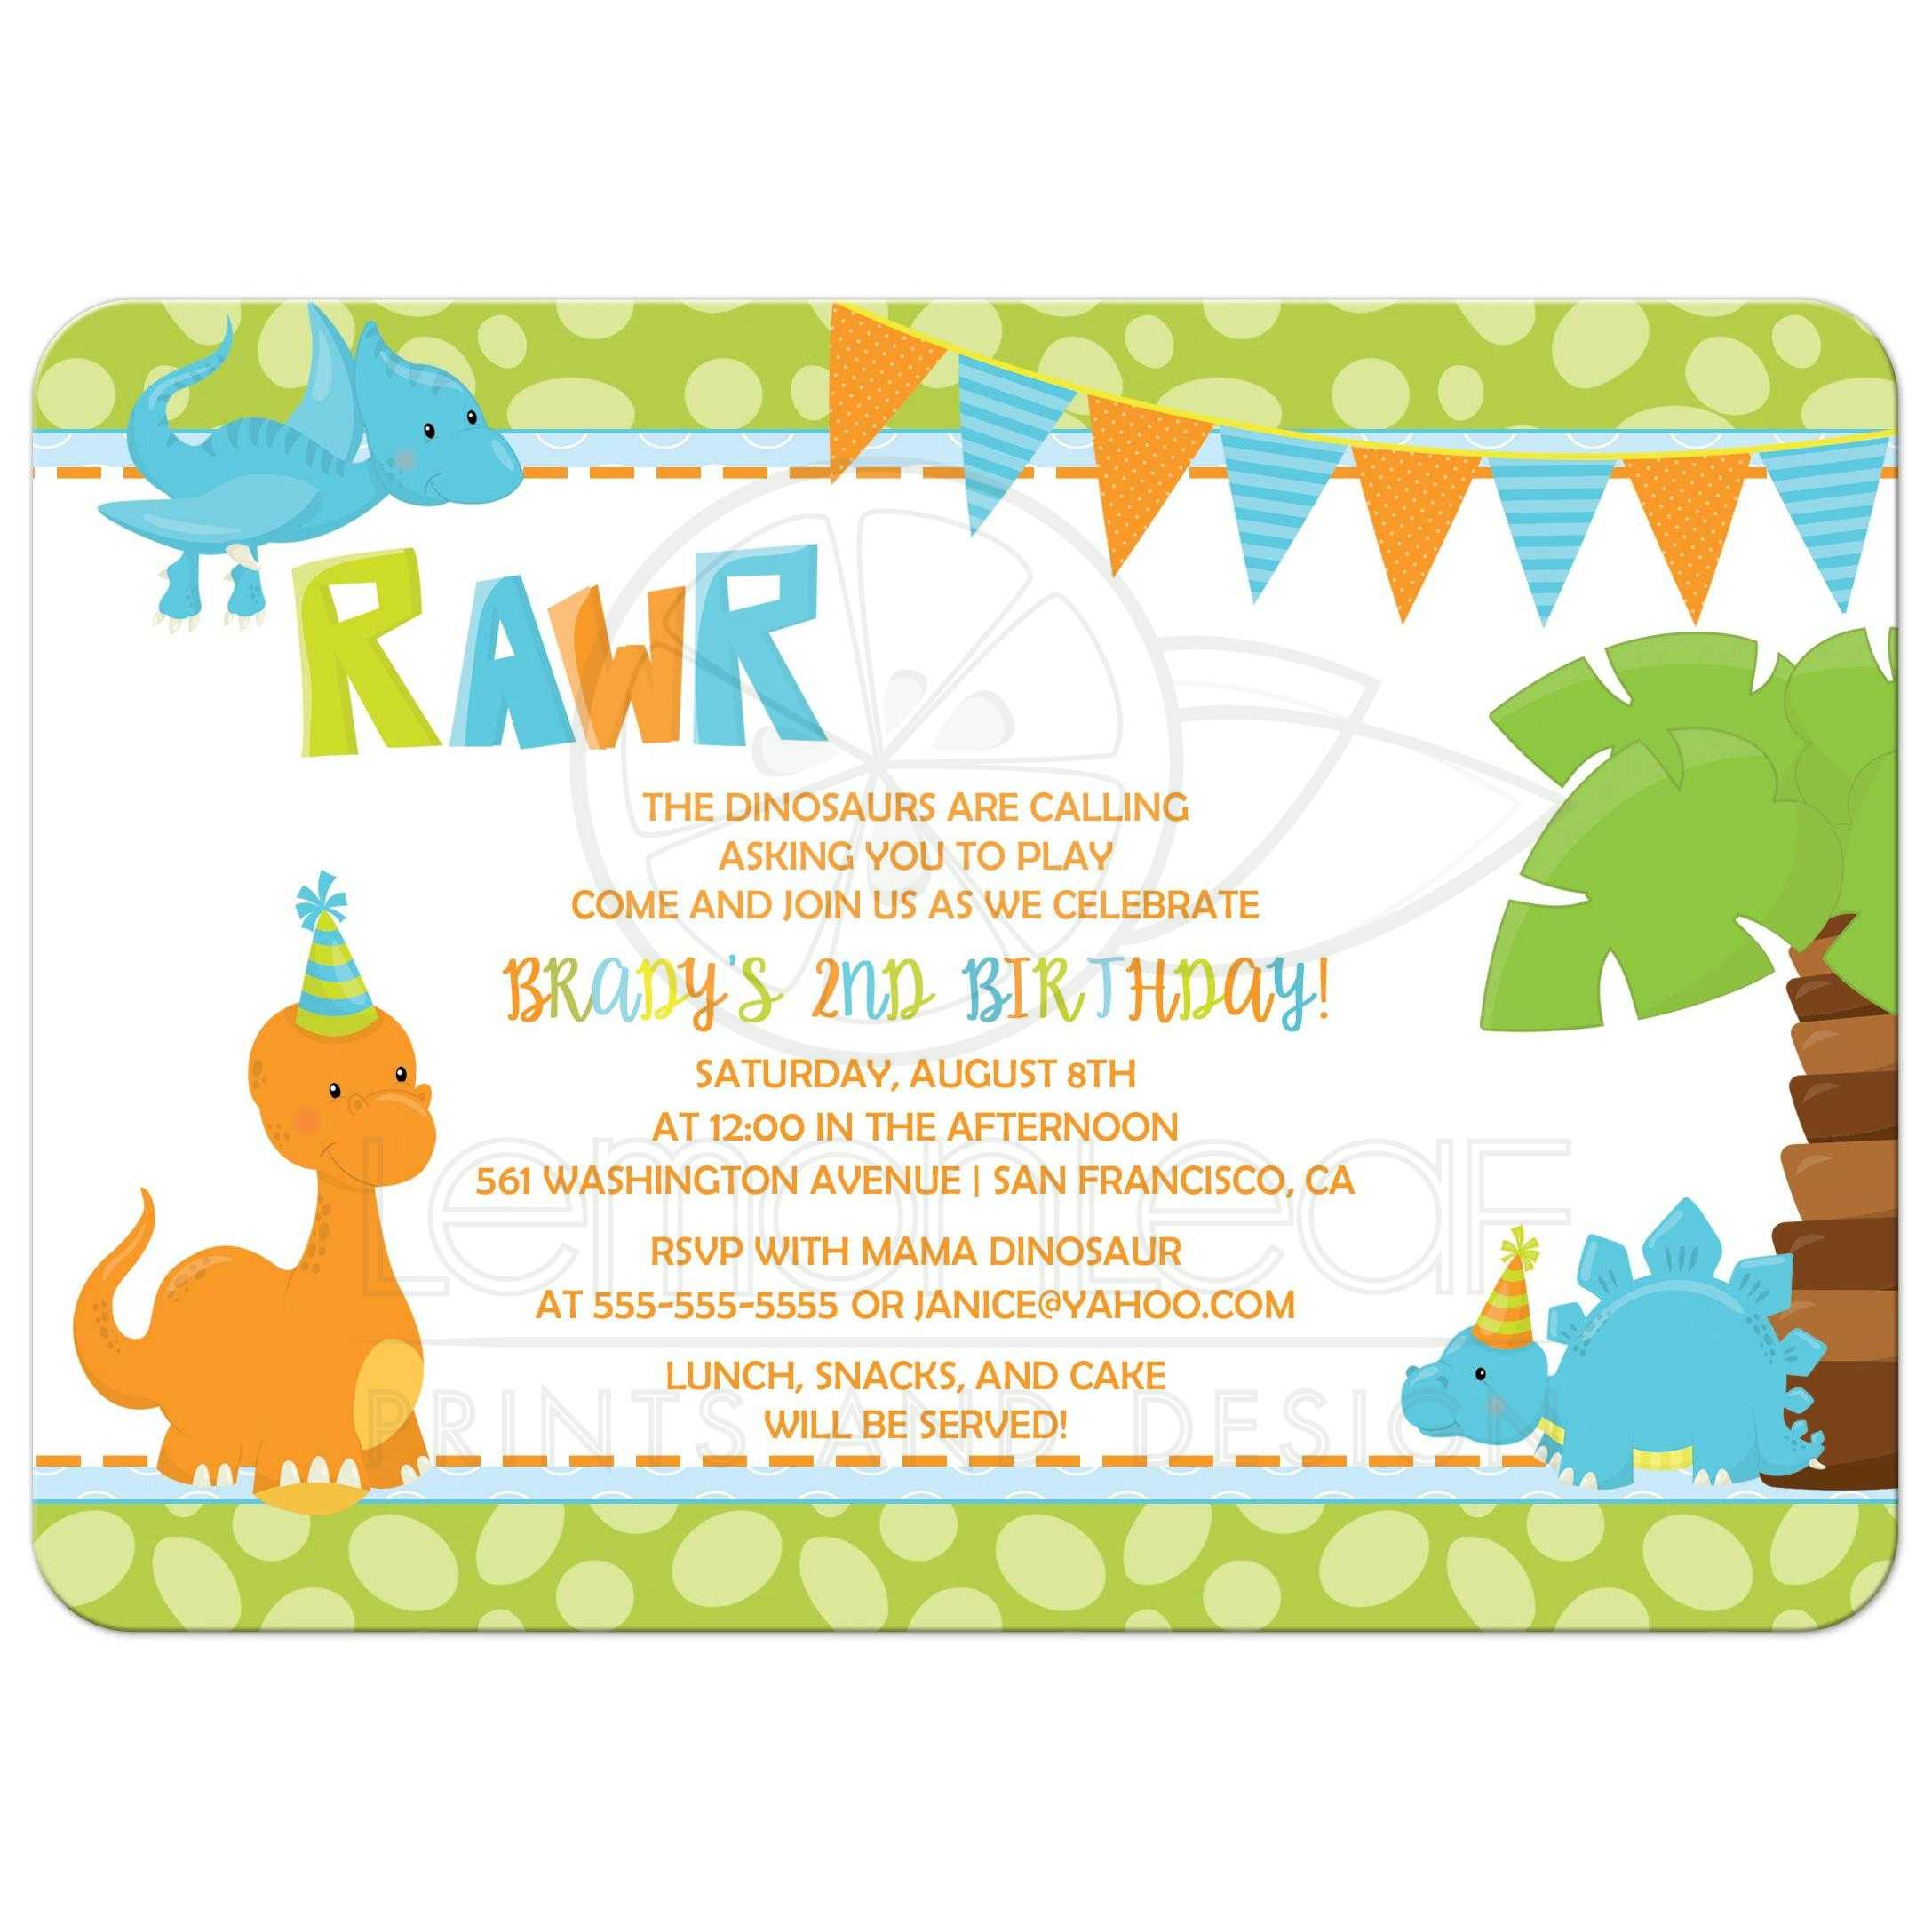 Baby Shower Invitations Dinosaur Theme is adorable invitations template